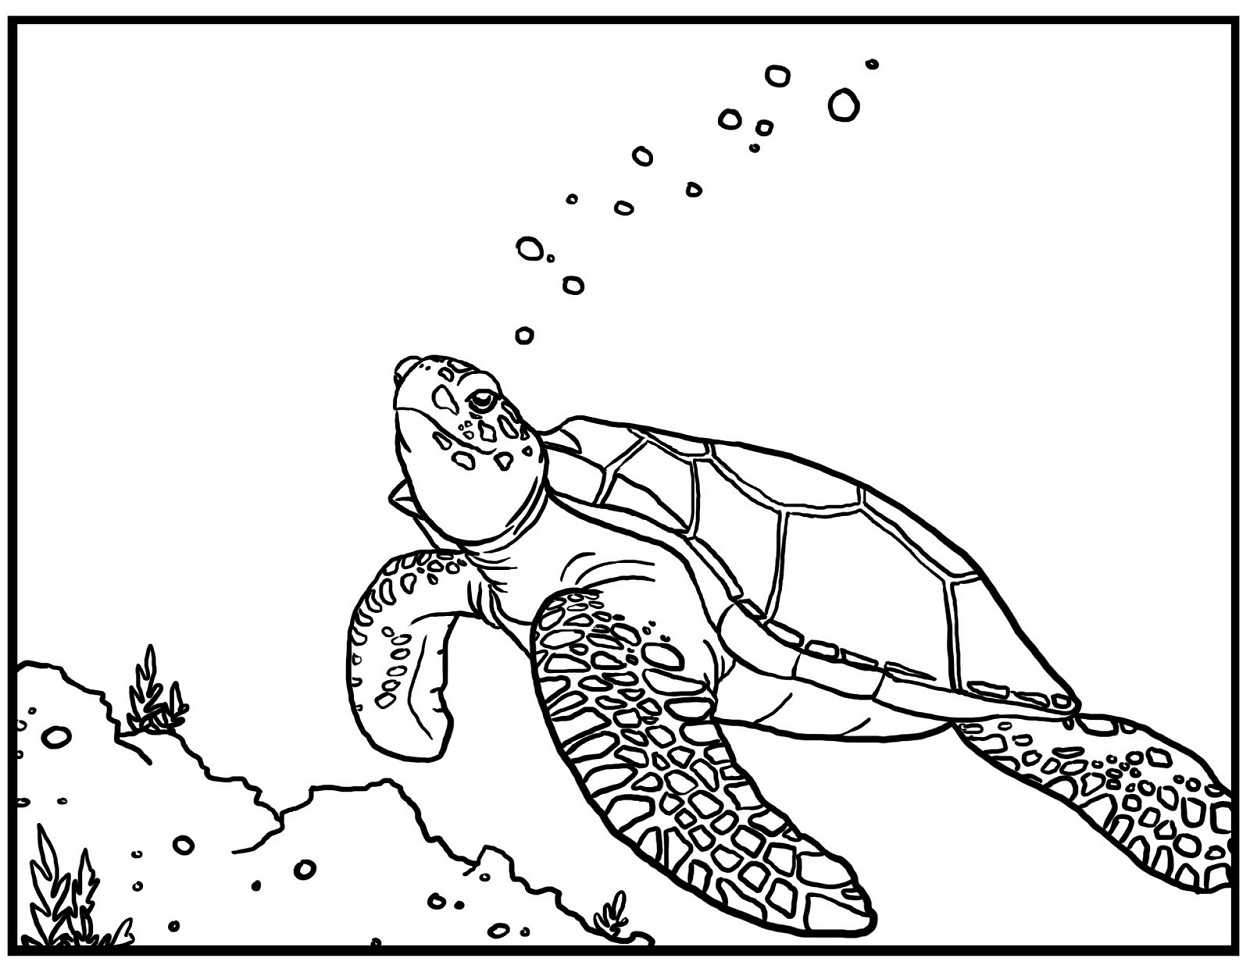 Drawn sea turtle printable Turtle free pages sea for